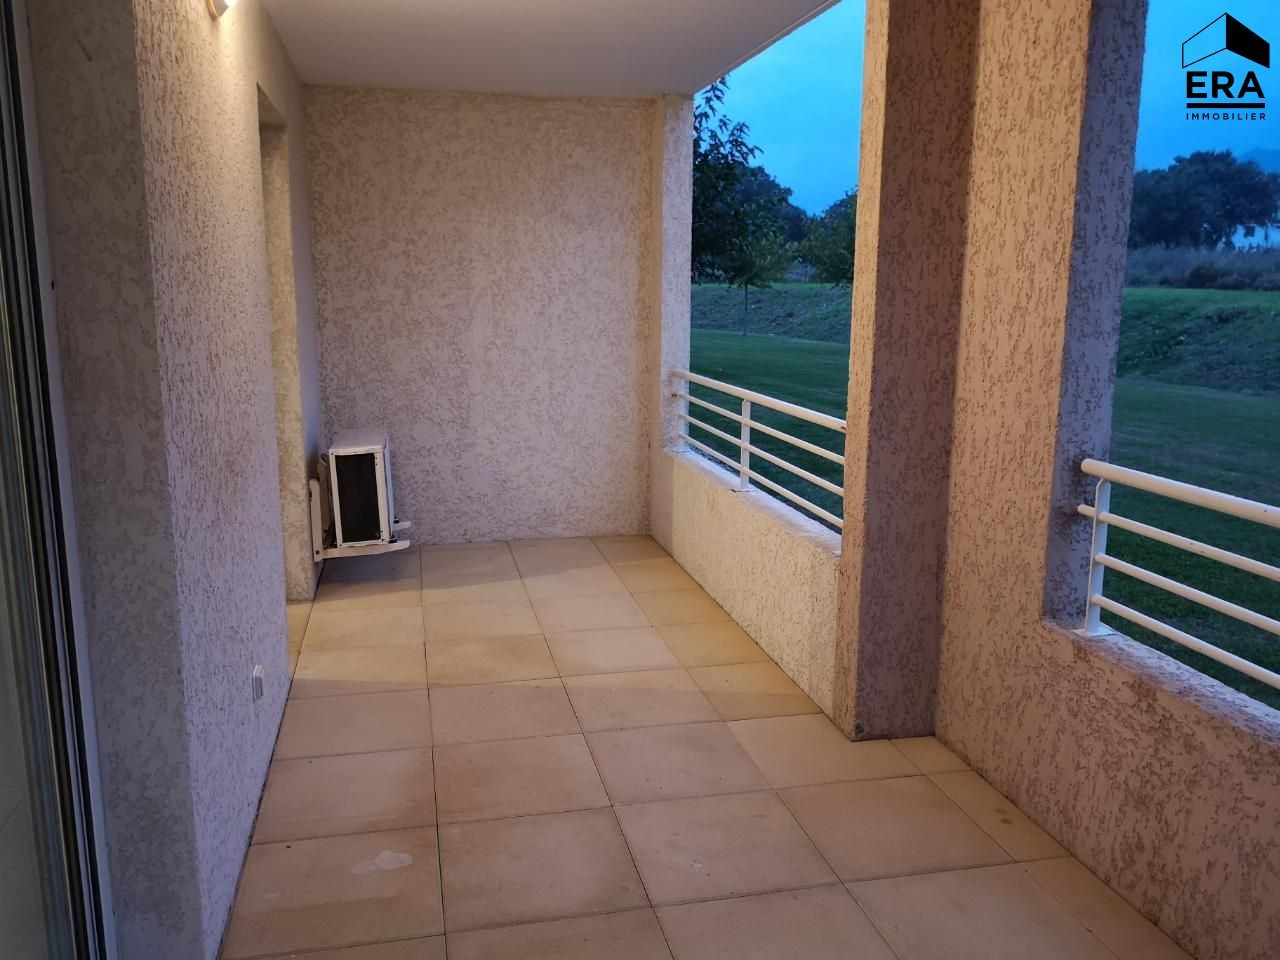 Appartement Vescovato   2 piece(s)   44.7 m2